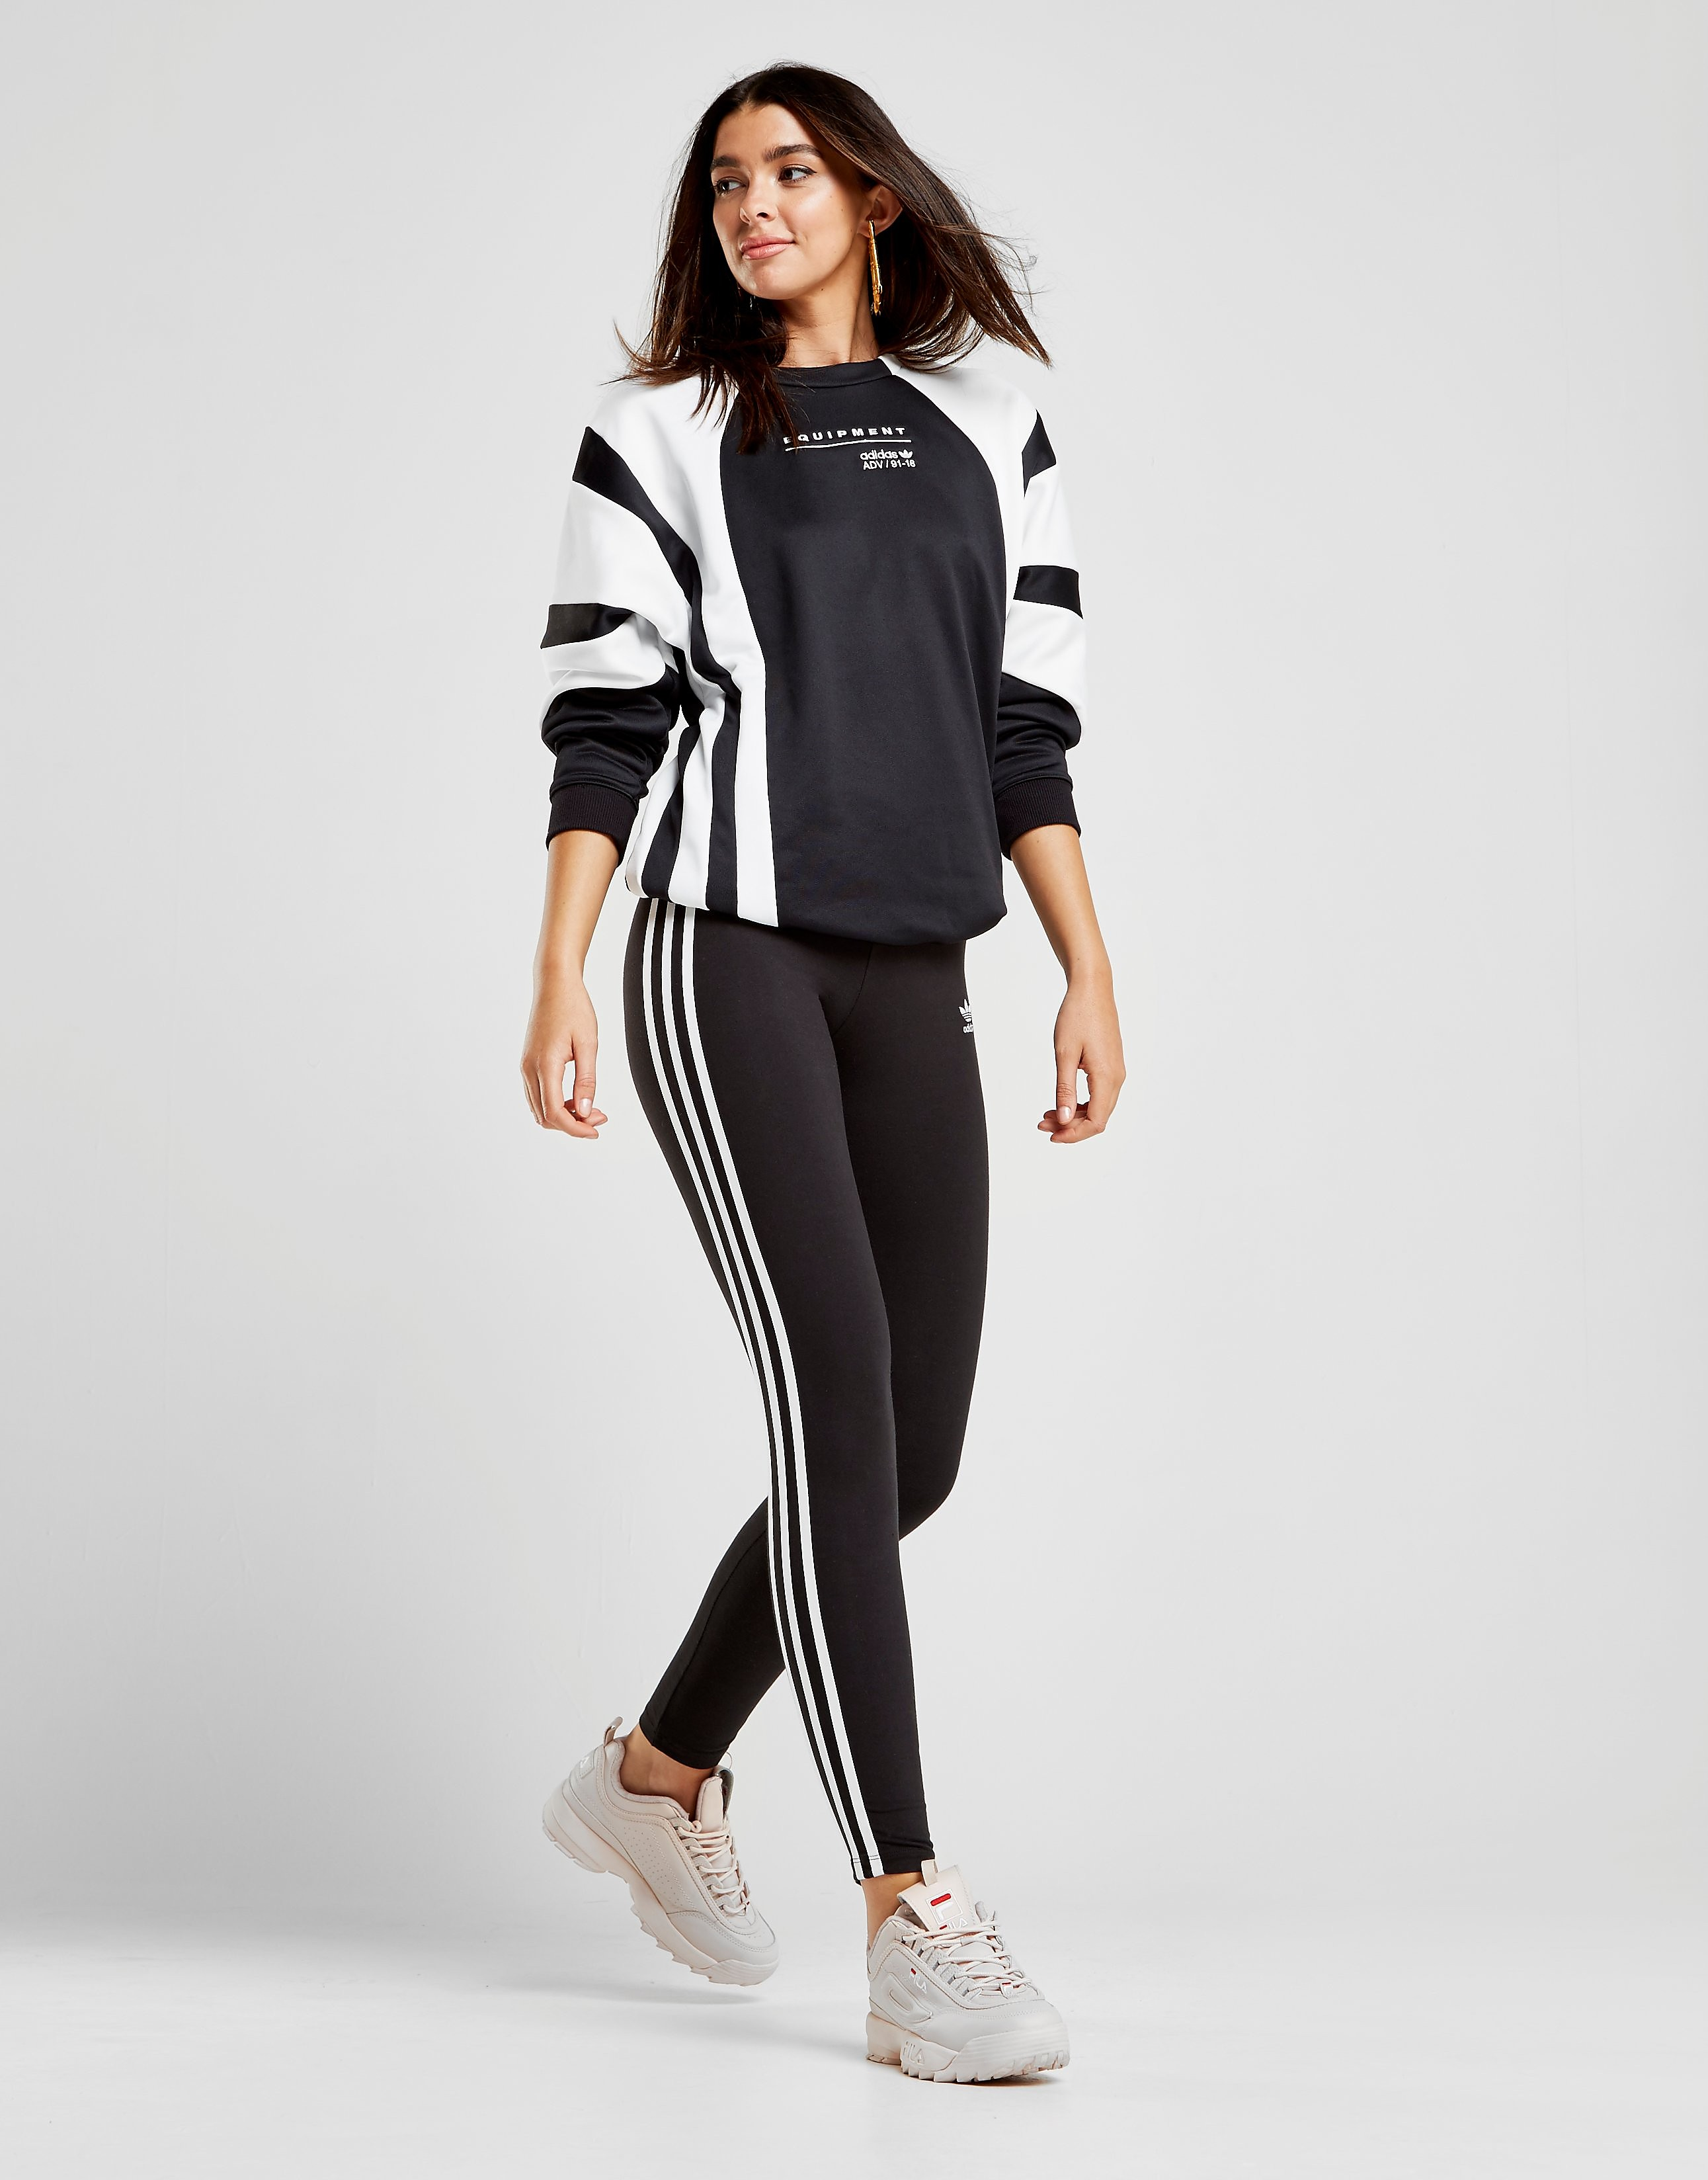 adidas Originals EQT Colourblock Crew Sweatshirt